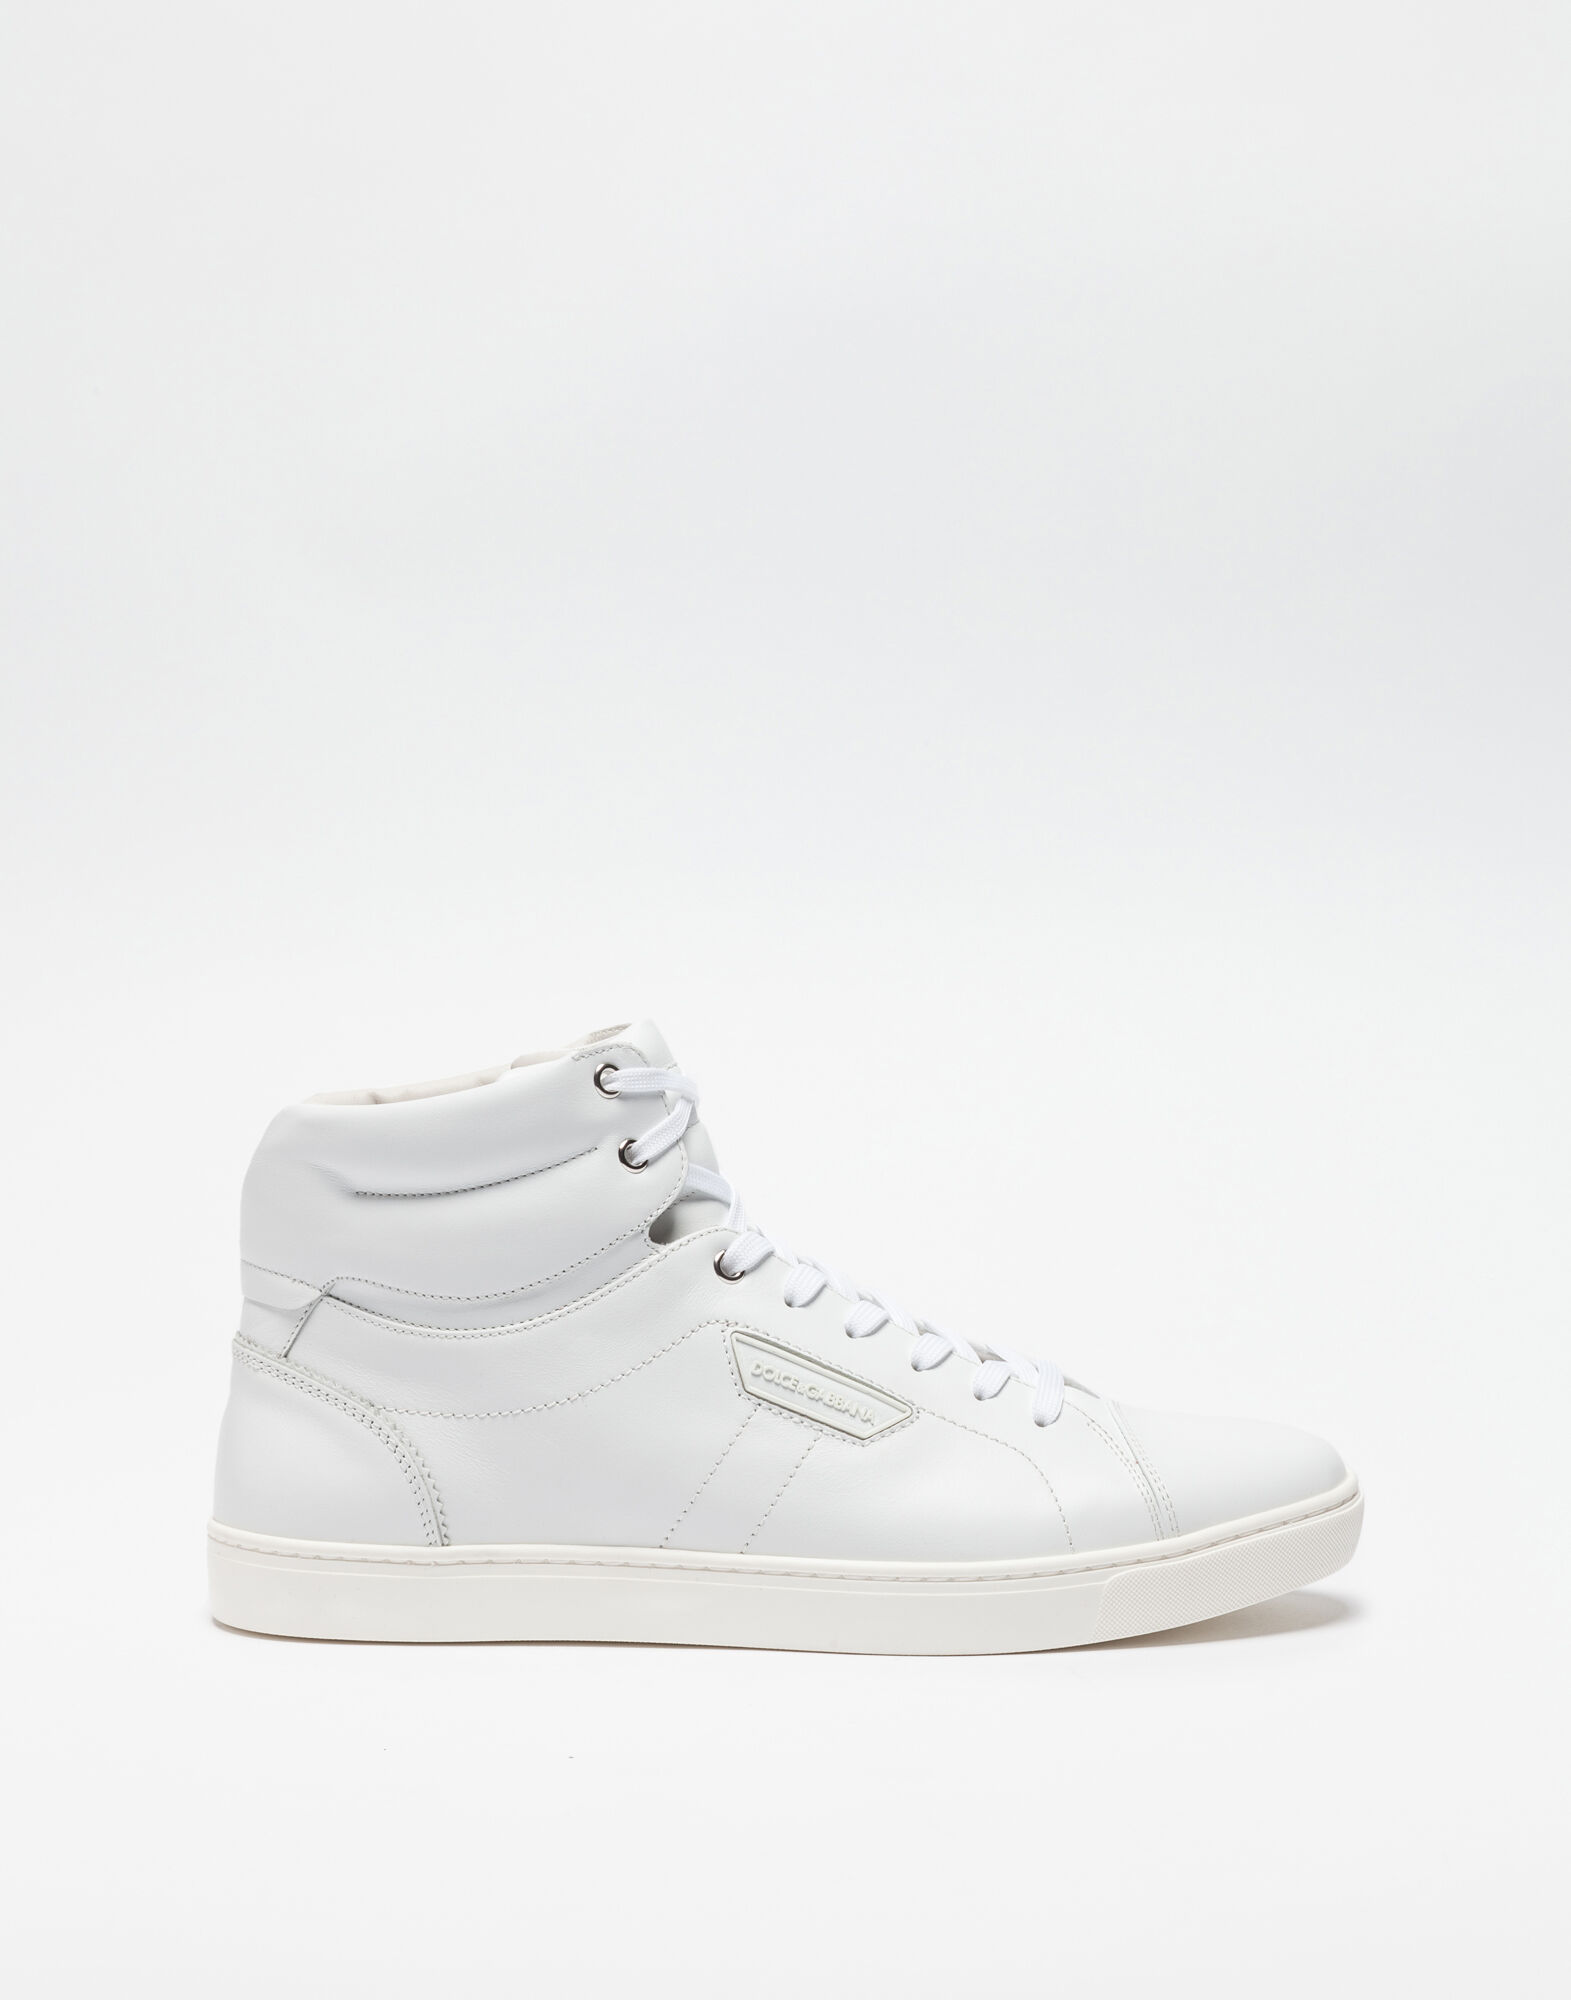 HIGH-TOP SNEAKERS IN WHITE NAPA CALFSKIN